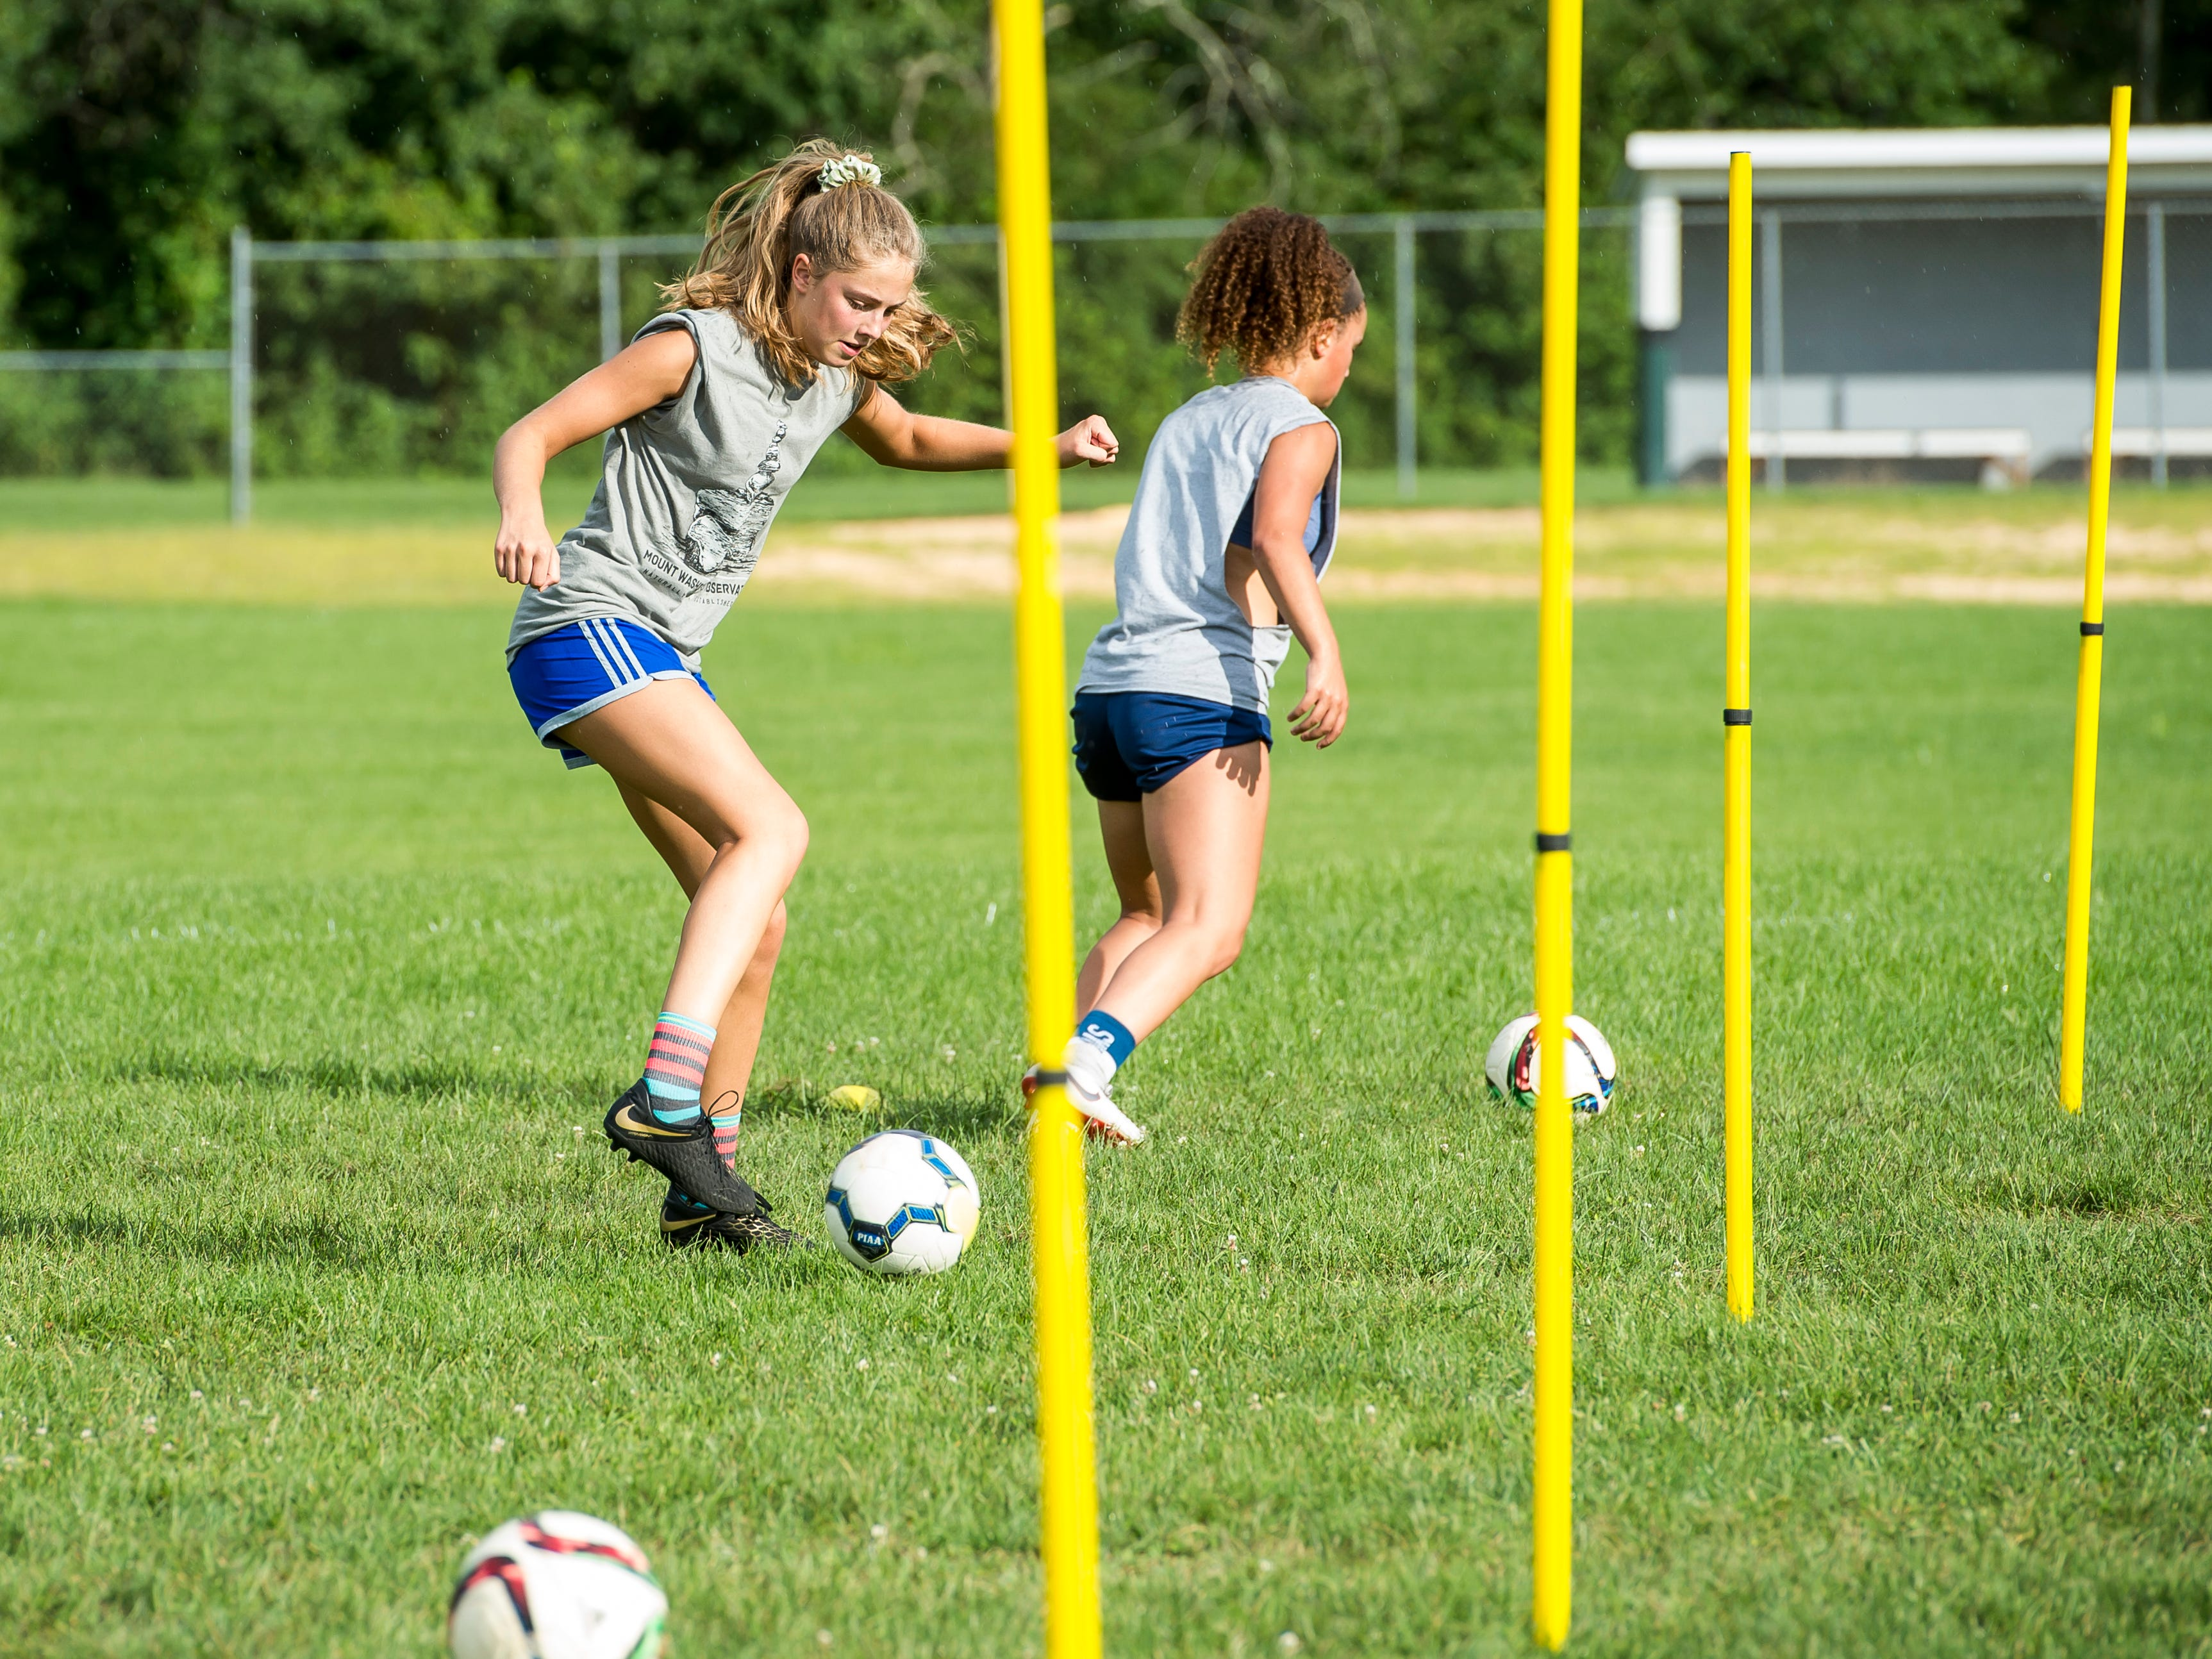 Fairfield's Zoe Logue works on a foot drill during the first day of fall sports practice on Monday, August 13, 2018.